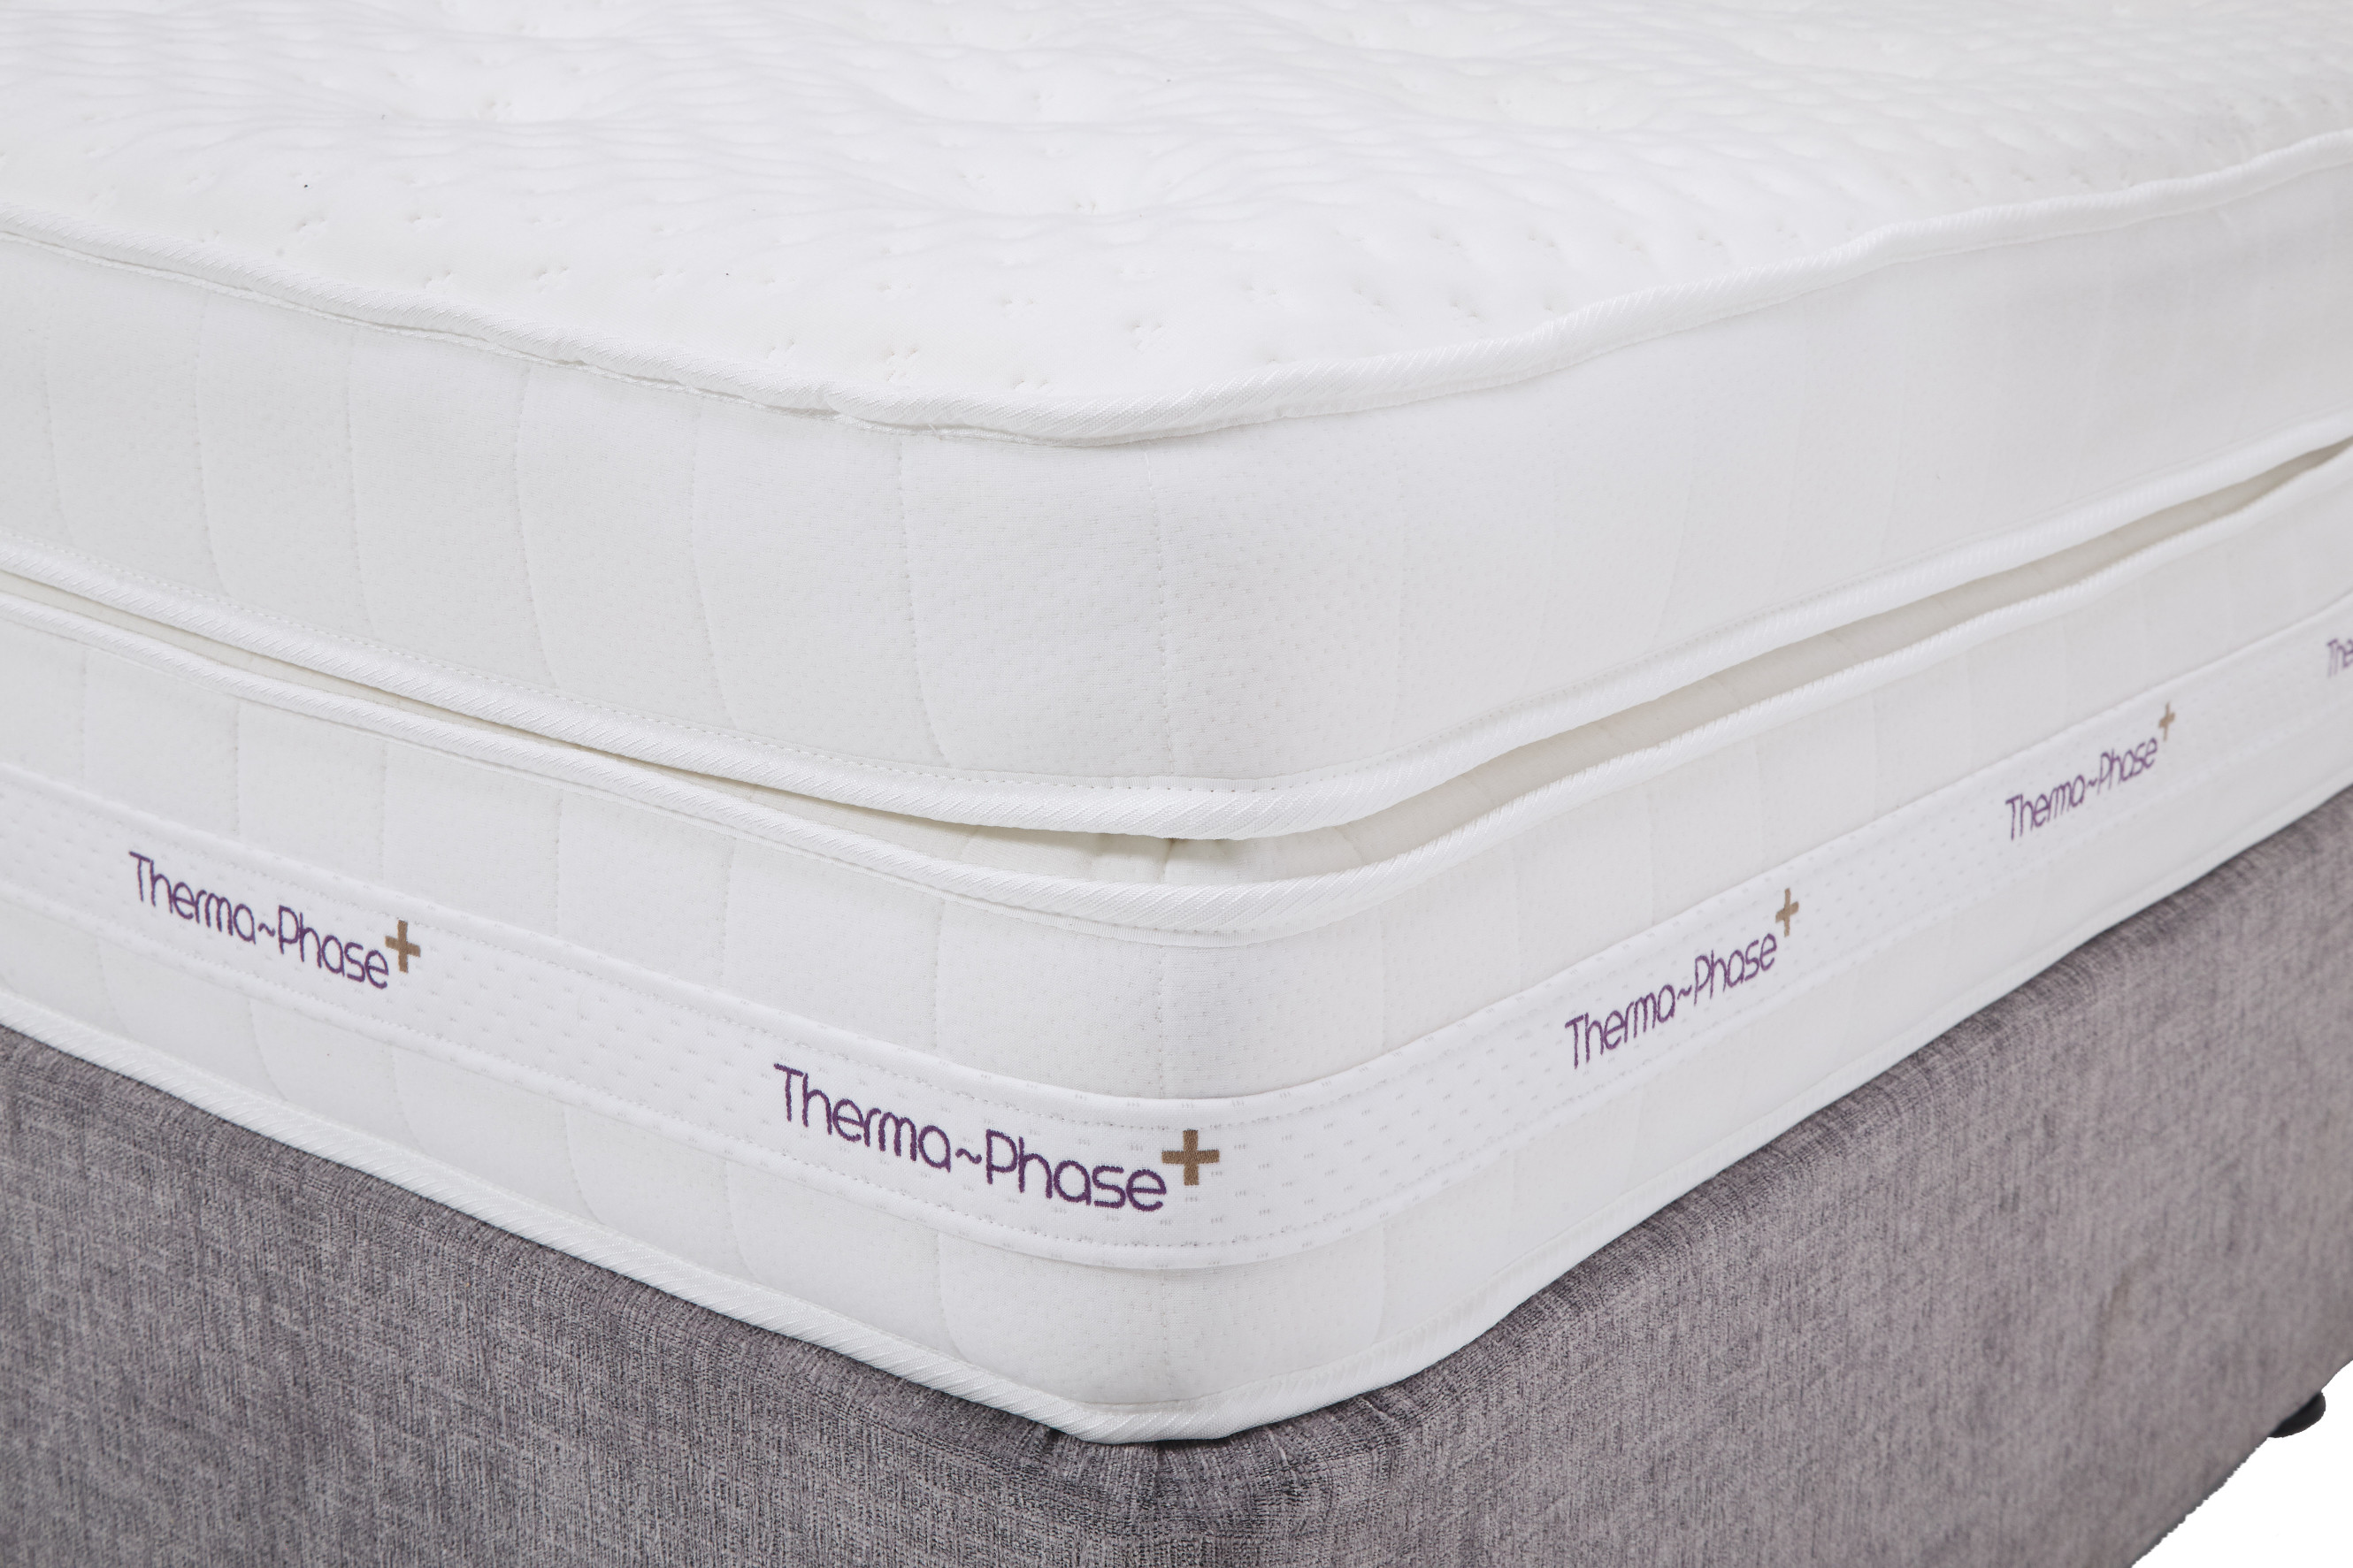 Caseys Thermaphase + 2500 Mattress & Divan